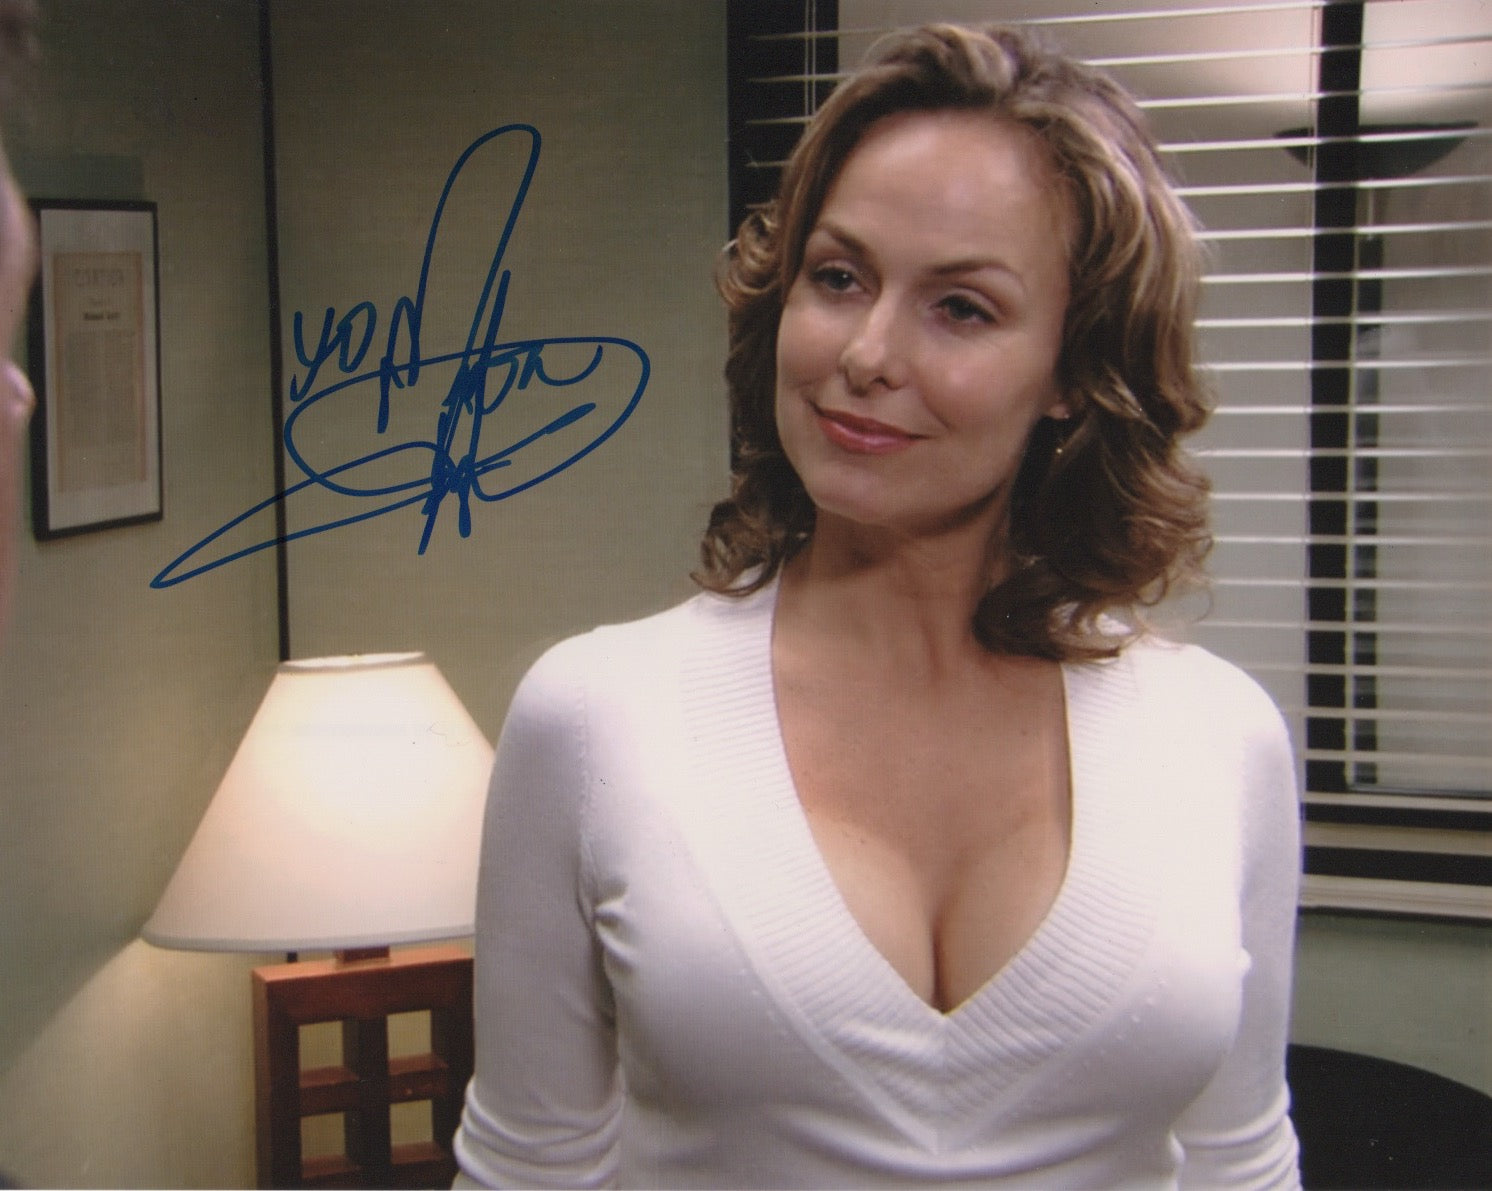 Melora Hardin The Office Autograph 8x10 Photo #5